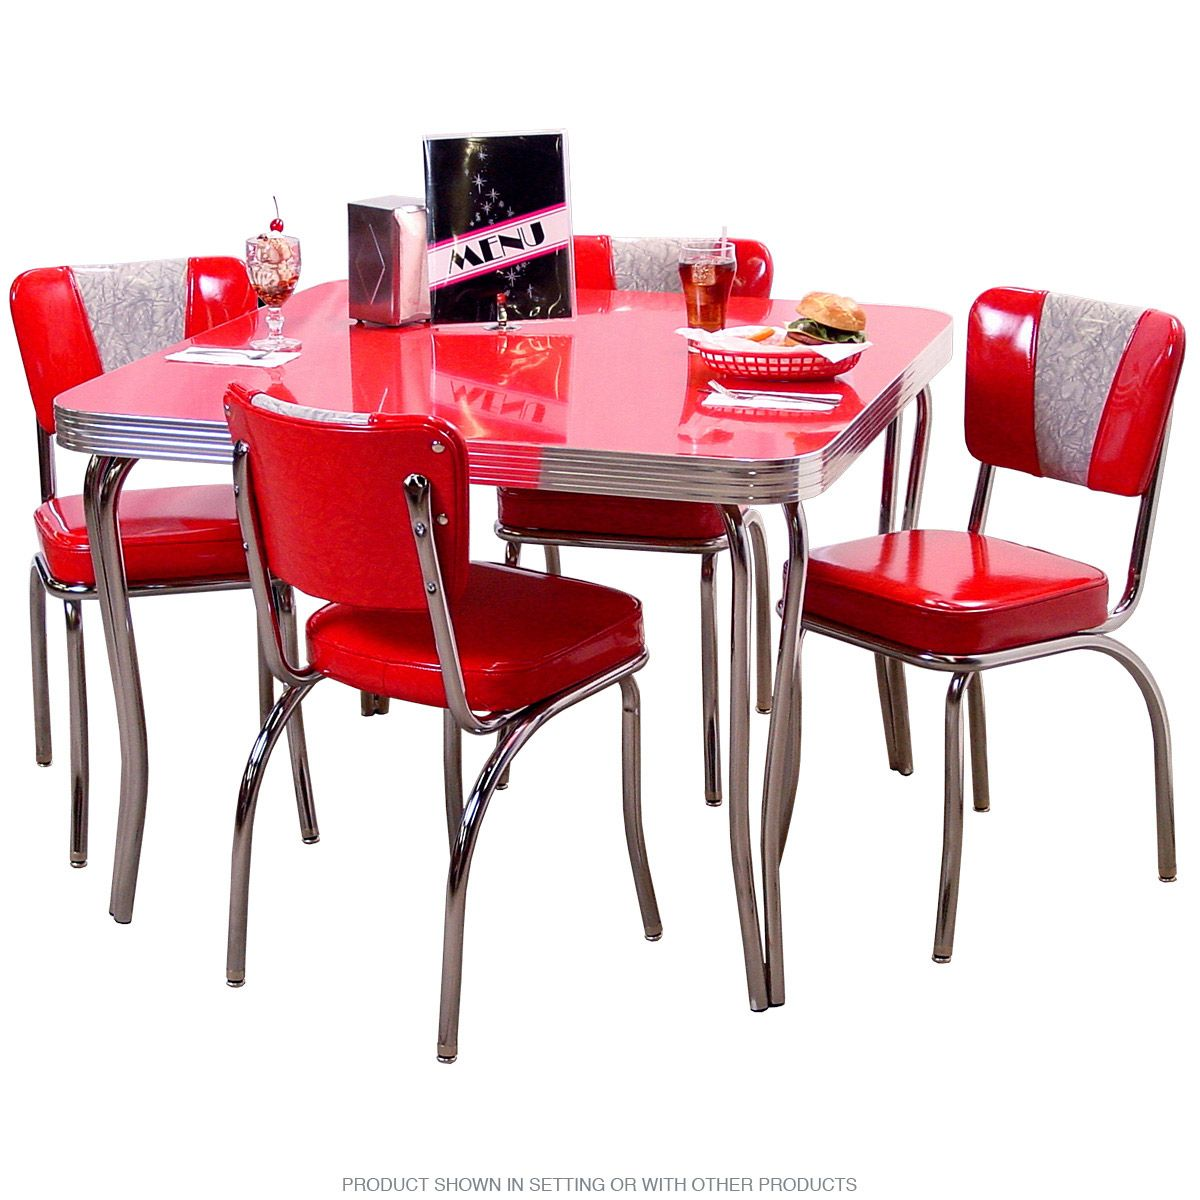 Classic 50s Style Is Easy To Get In Your Home Or Business With This 50s Style Dinette Kitchen Set Great V 50s Kitchen Decor Kitchen Dinette Sets Retro Kitchen